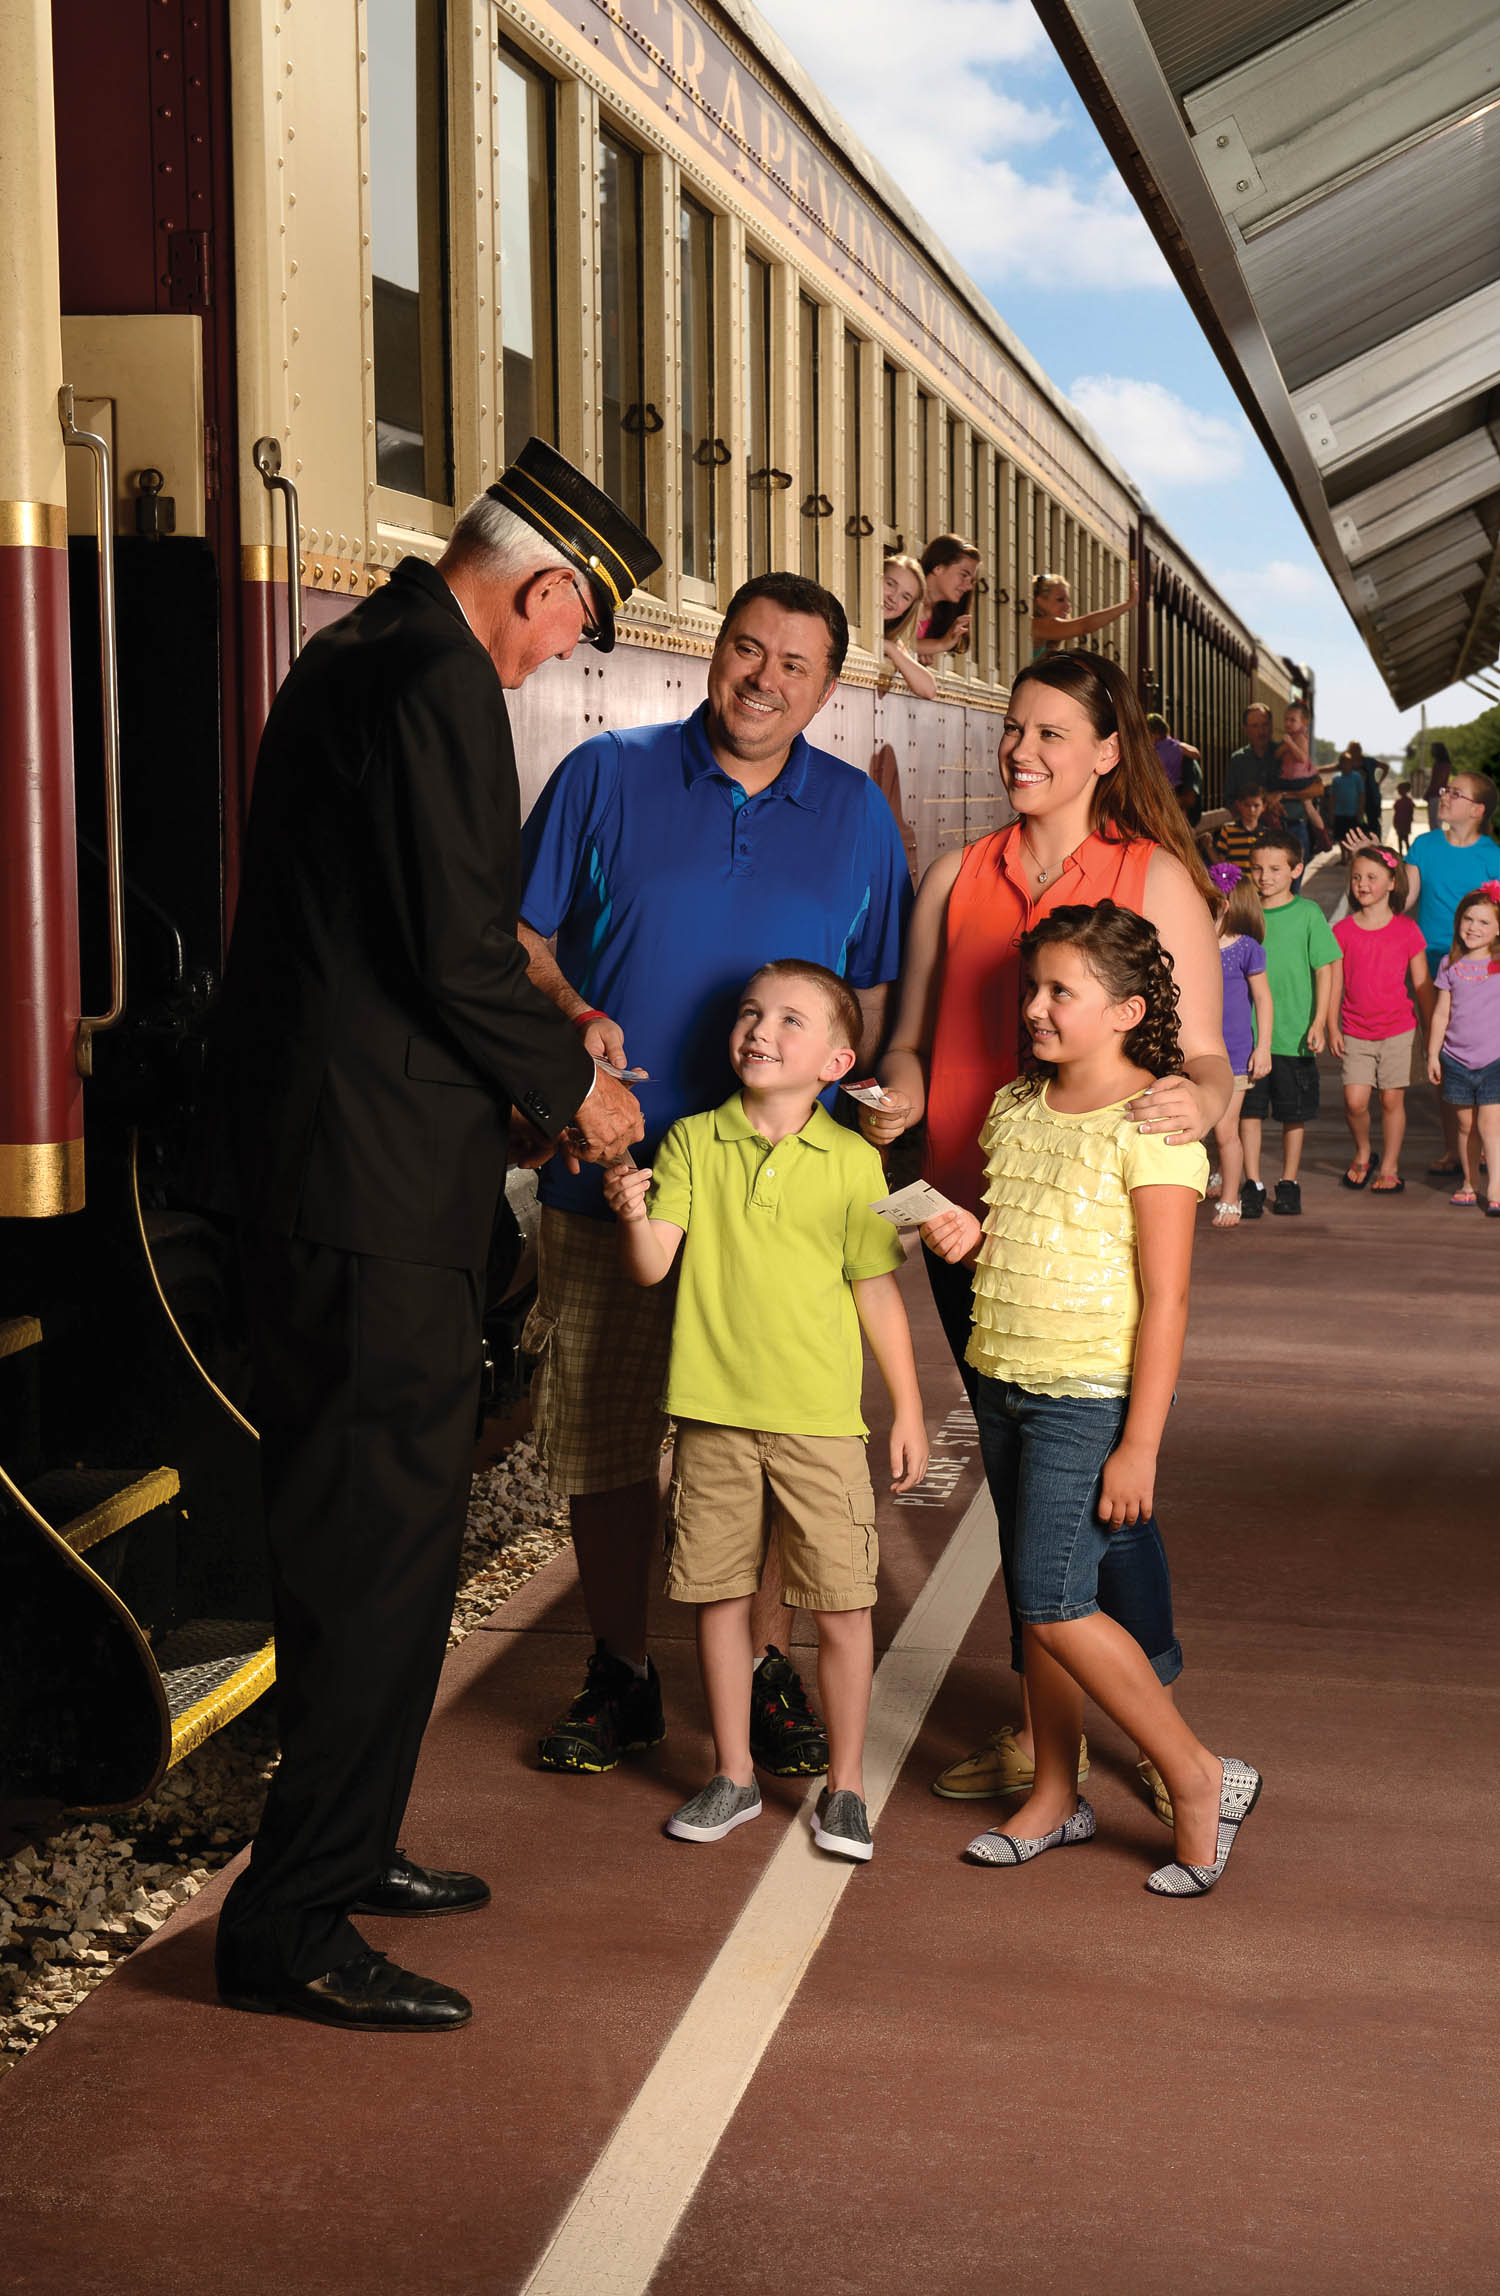 Family Fun on the Grapevine Vintage Railroad